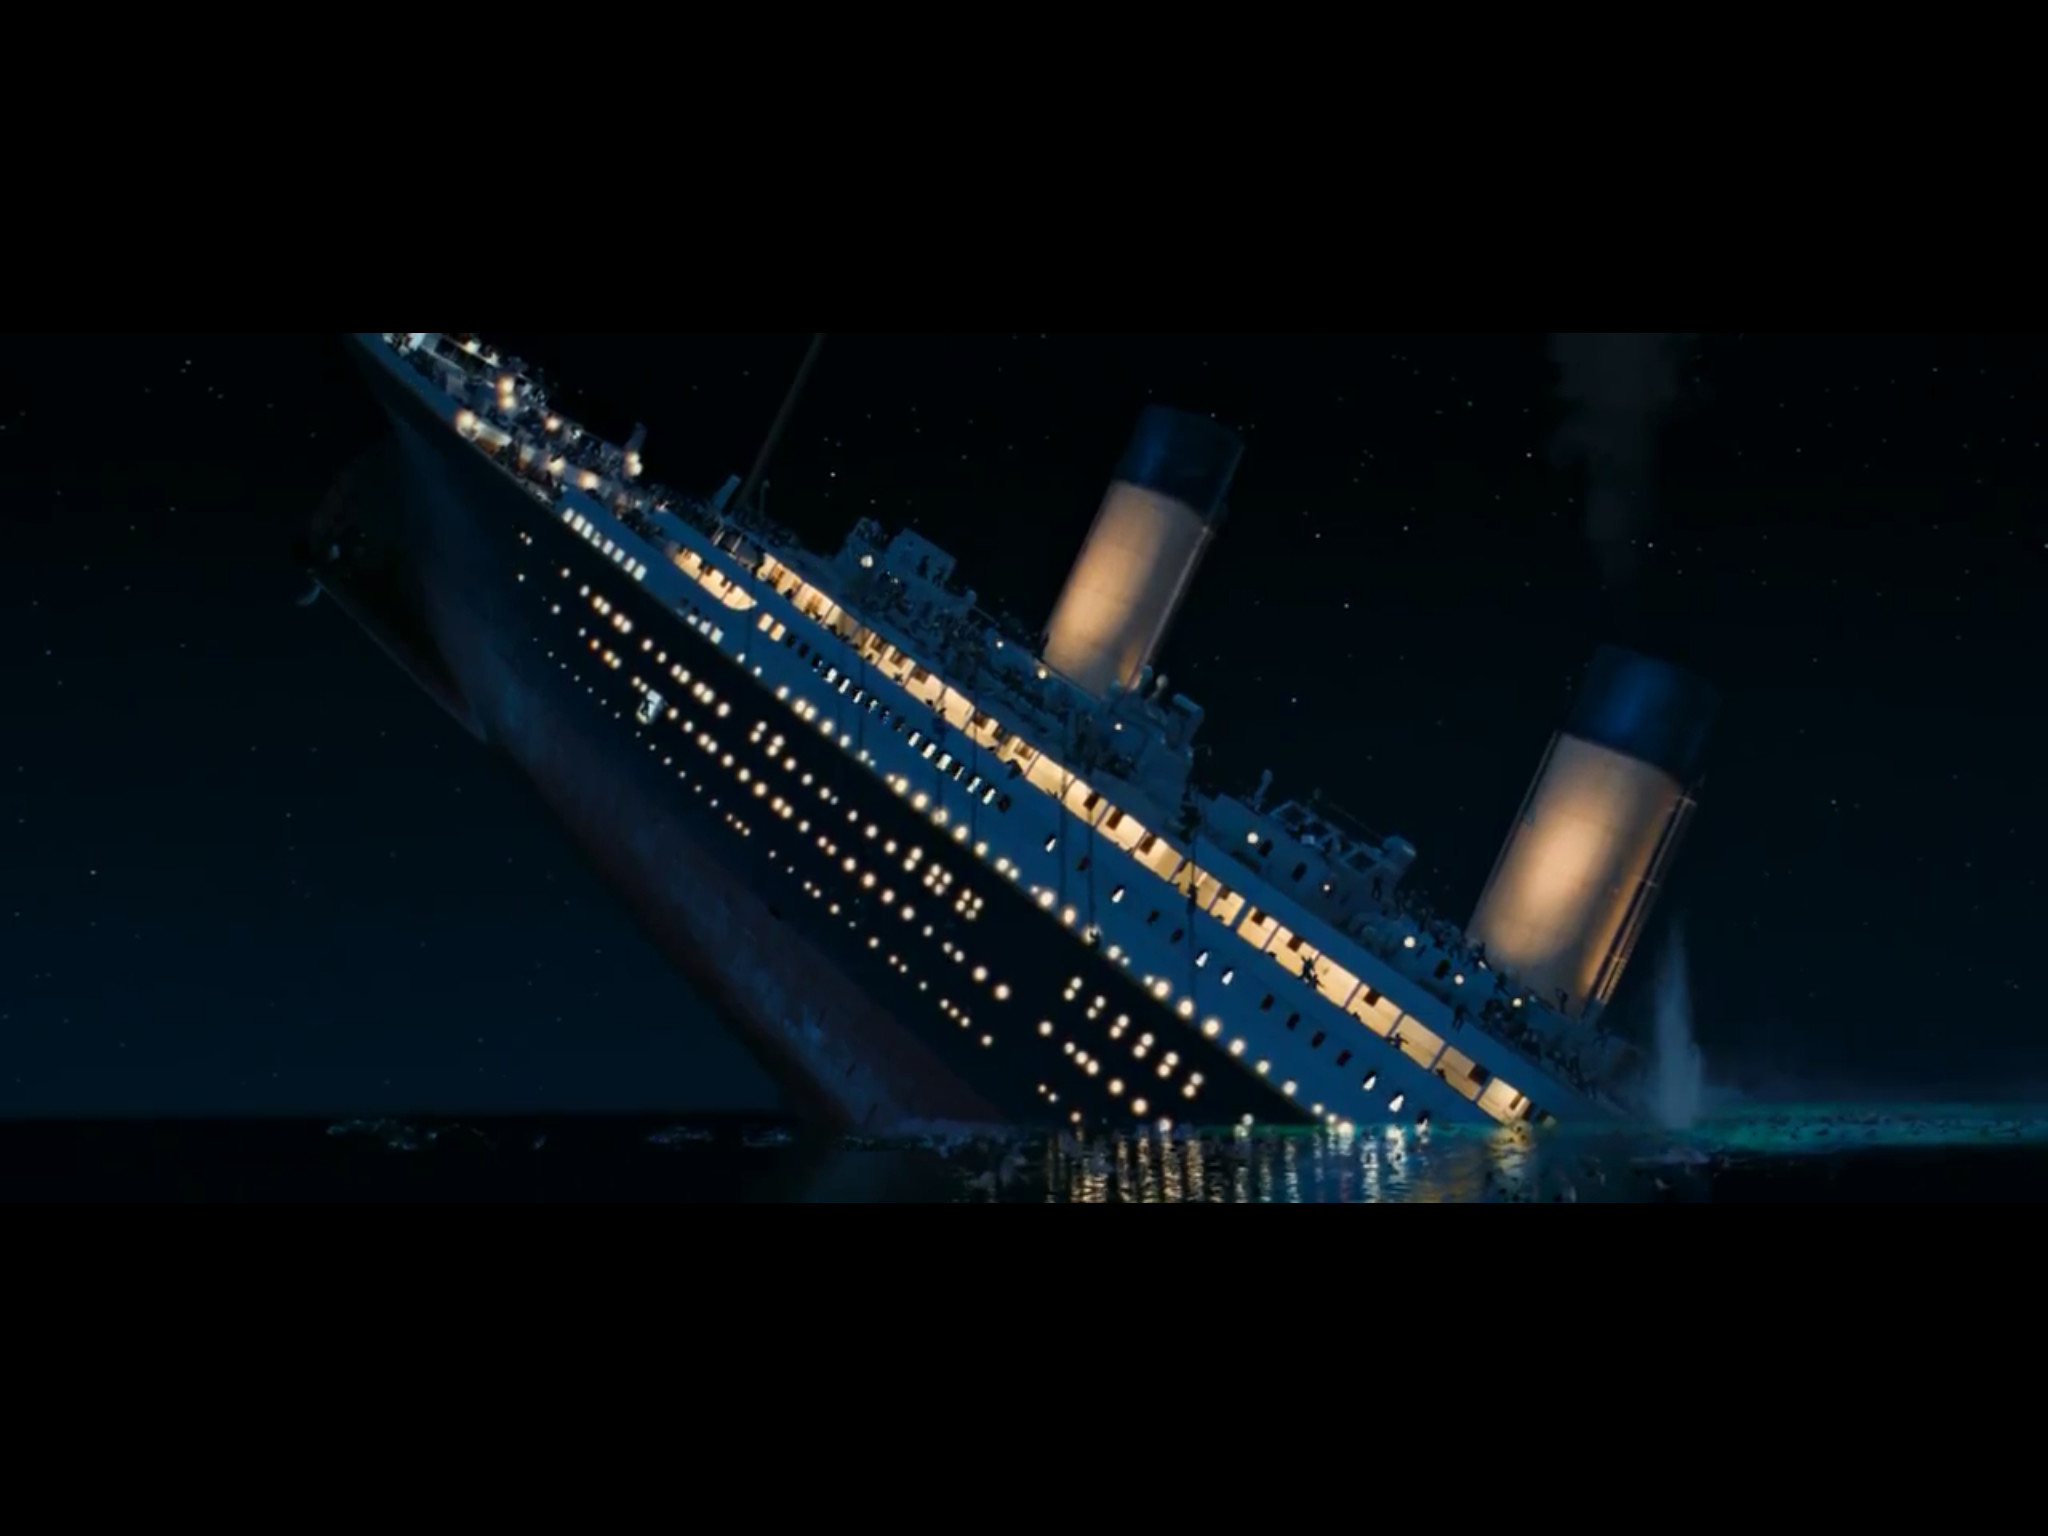 2048x1536 Titanic Movie Sinking | www.galleryhip.com - The Hippest Pics